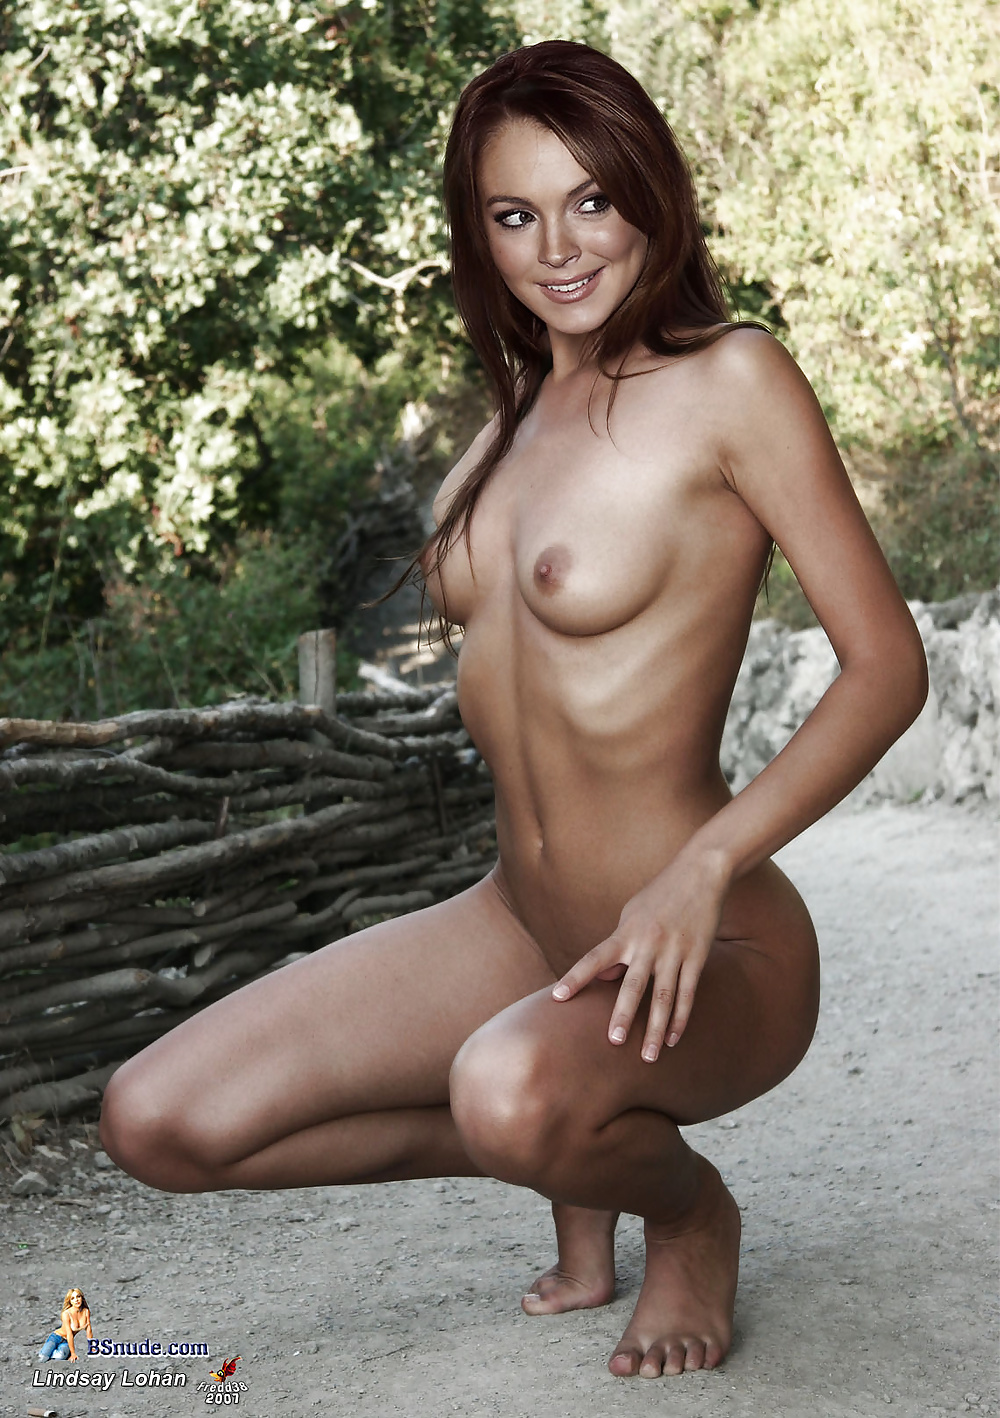 Naked pictures of lindsay lohan-1840